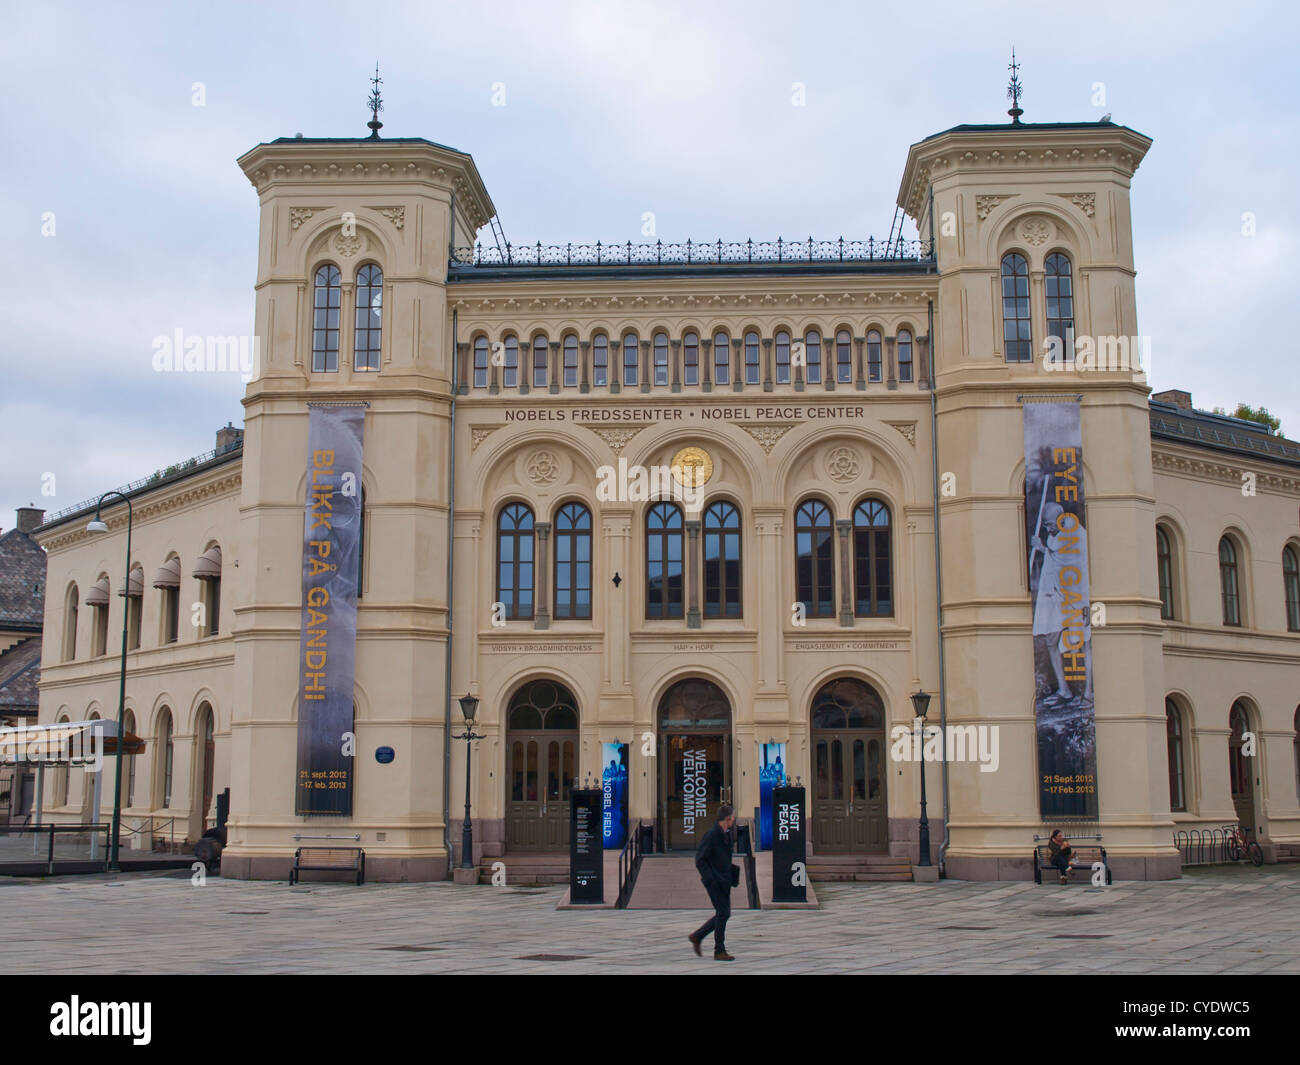 Nobel peace prize center in the Norwegian capital Oslo, has informative exhibitions about prize recipients and their - Stock Image